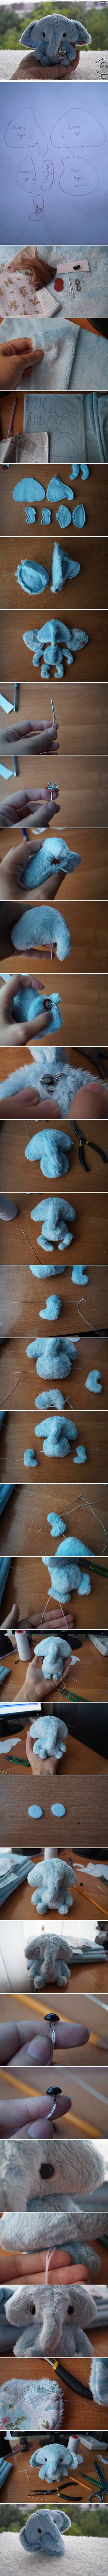 How To Make tulle Fabric Little pygmy Elephant step by step DIY tutorial instructions